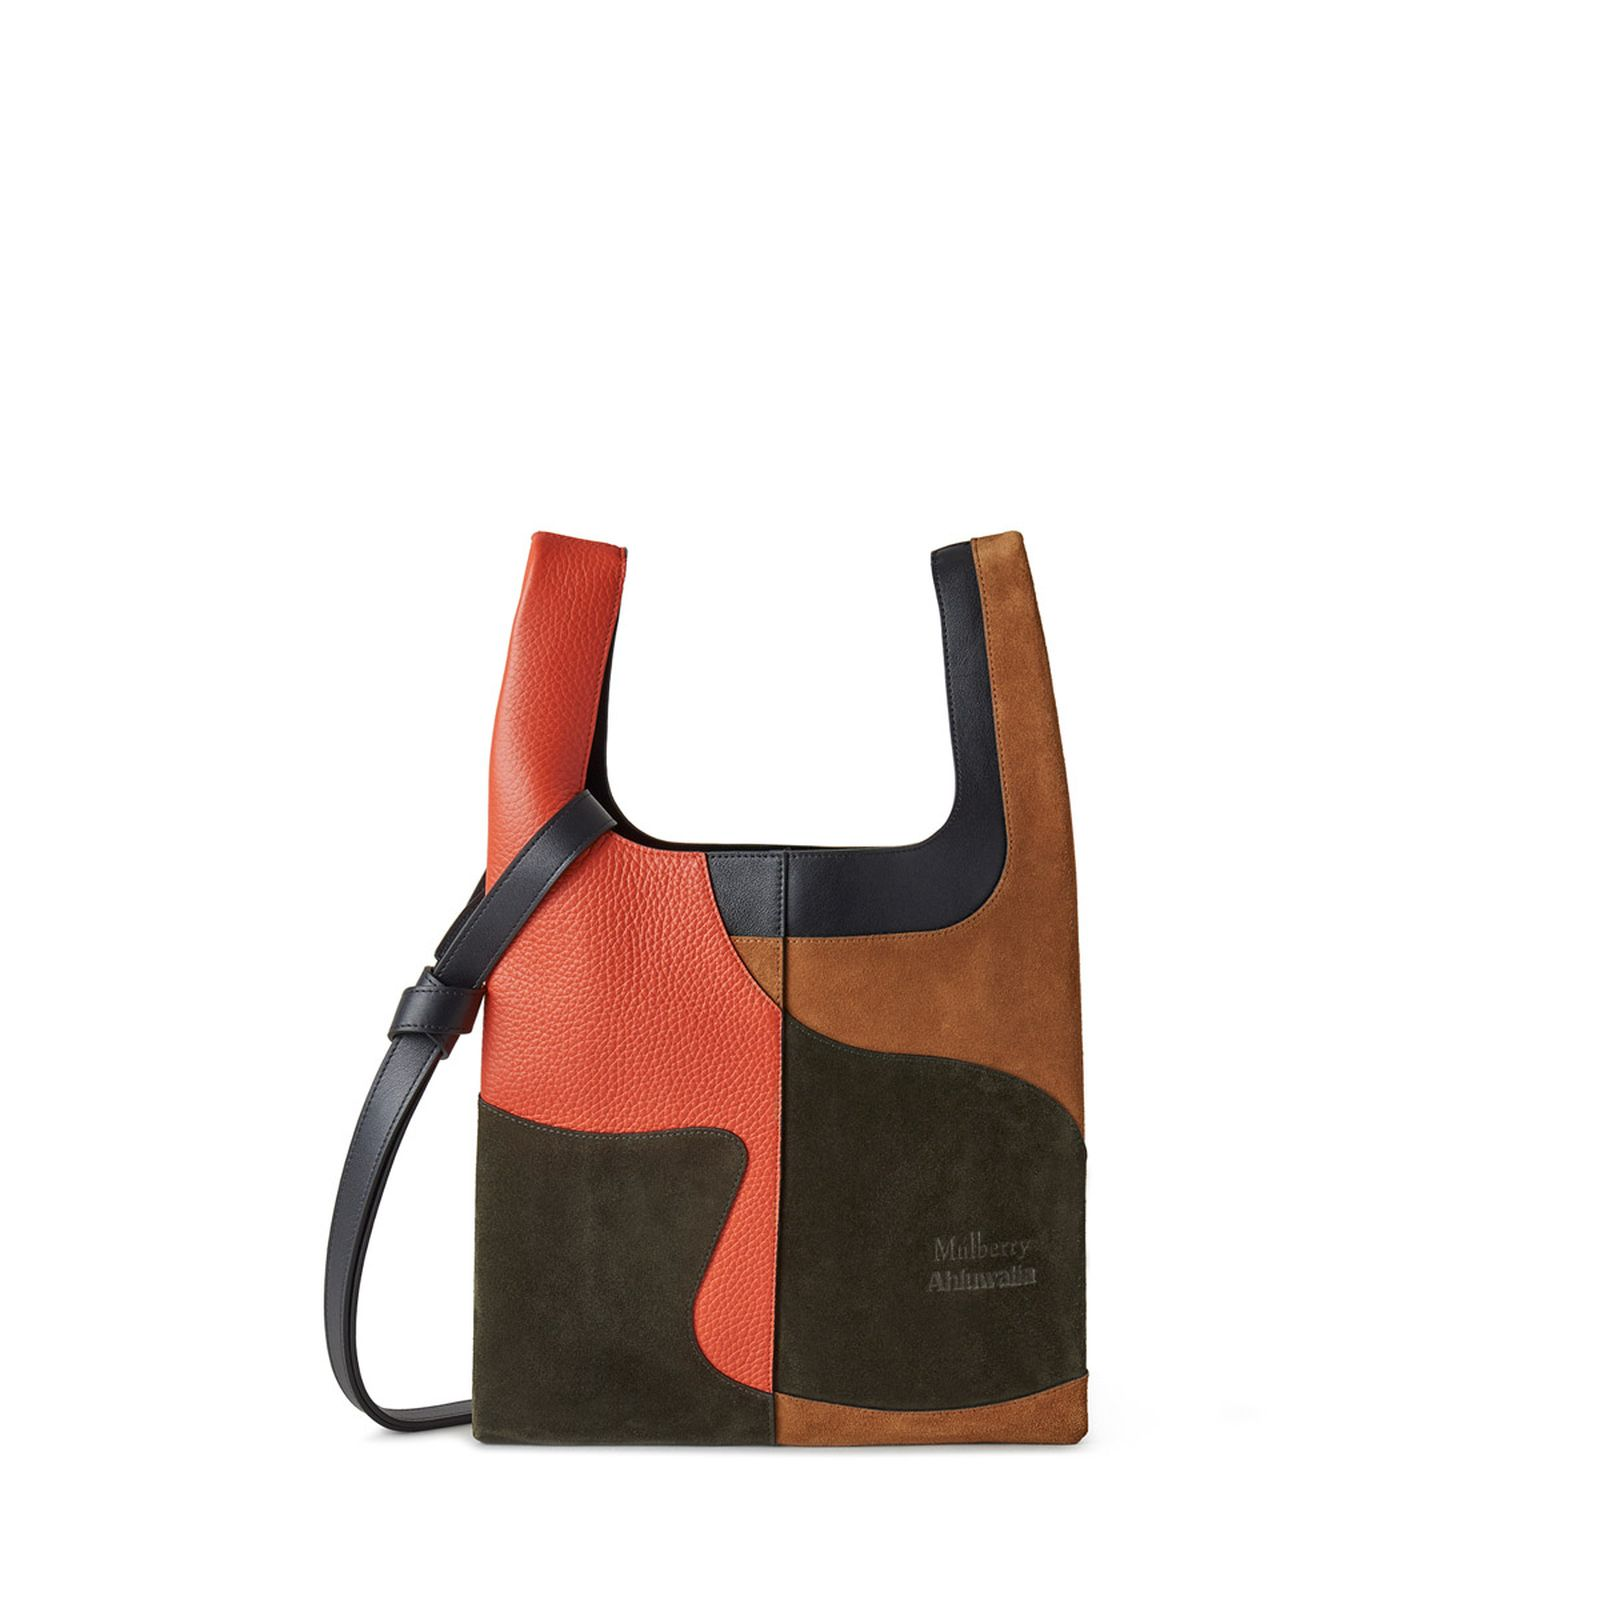 ahluwalia-mulberry-collaboration-017